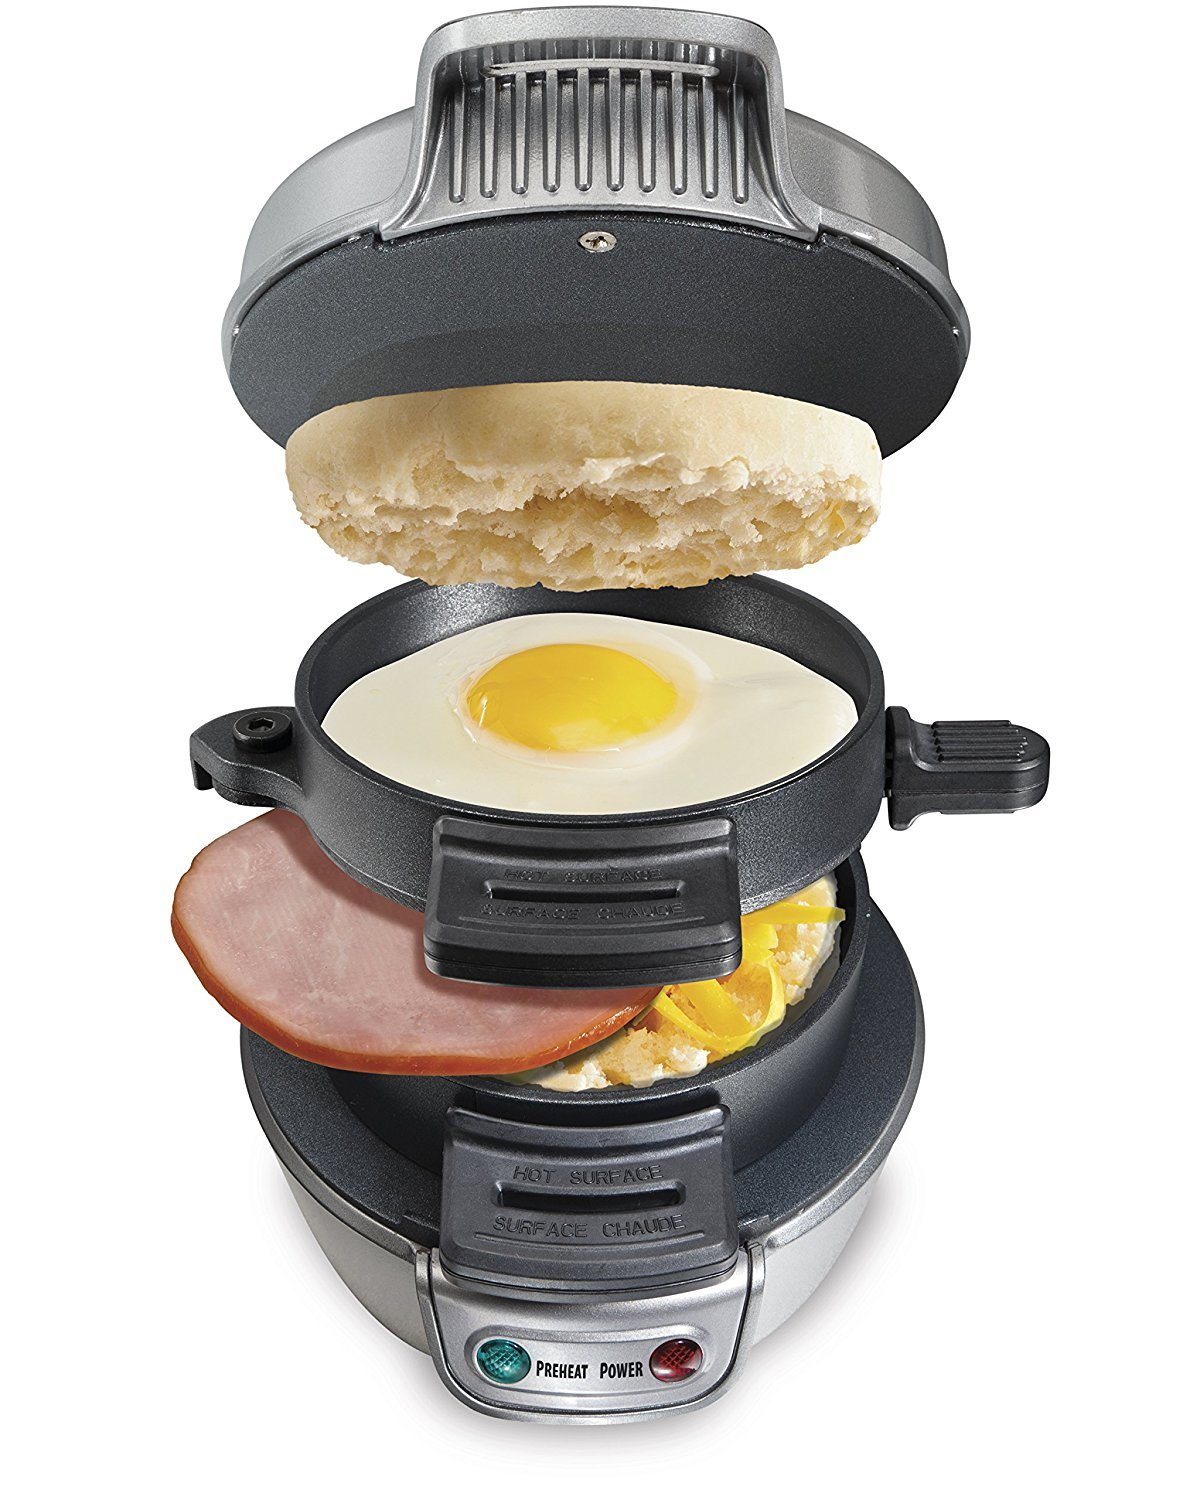 Father's Day Gift Ideas | Gifts For Dad | Gifts For Men | Breakfast Sandwich Maker